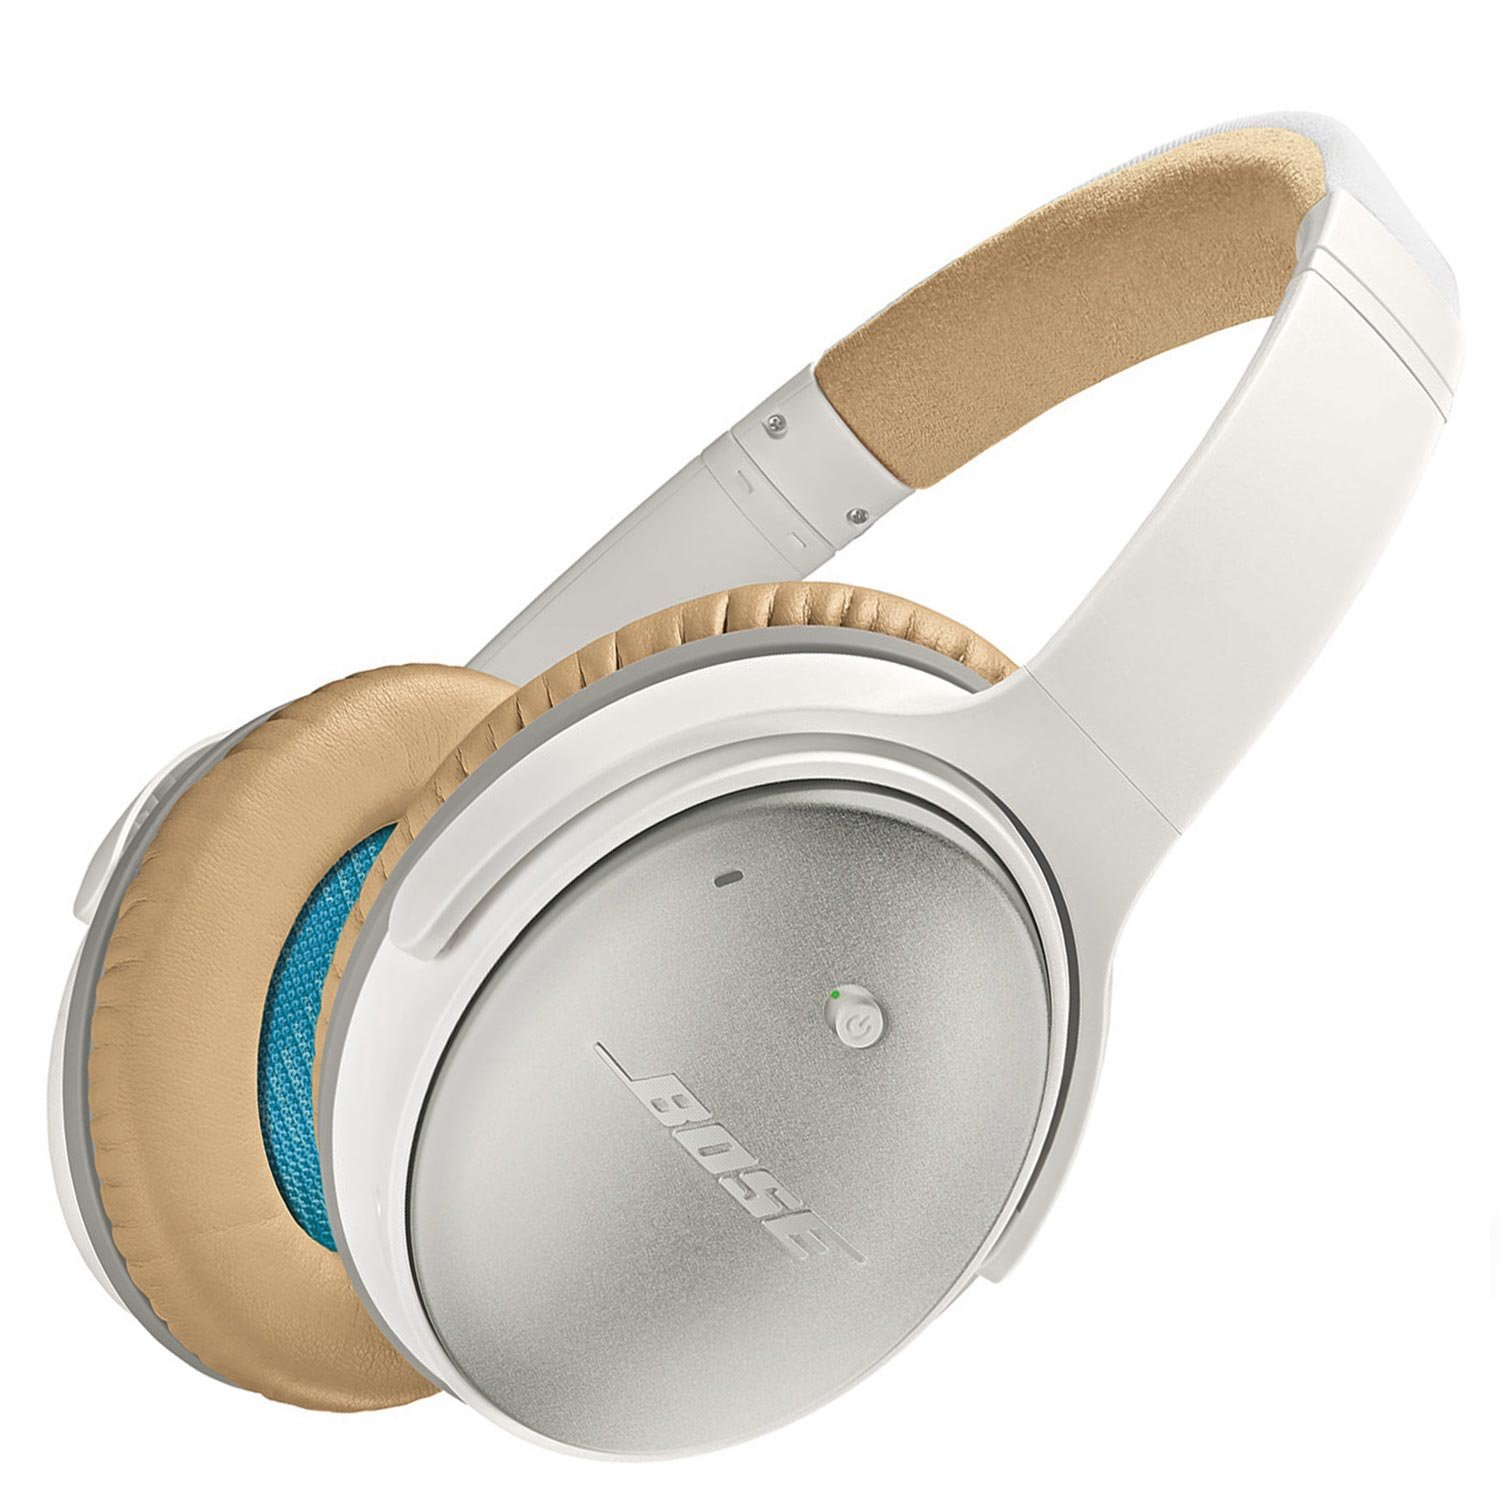 Bose QuietComfort 25 Over Ear Bluetooth Headphones